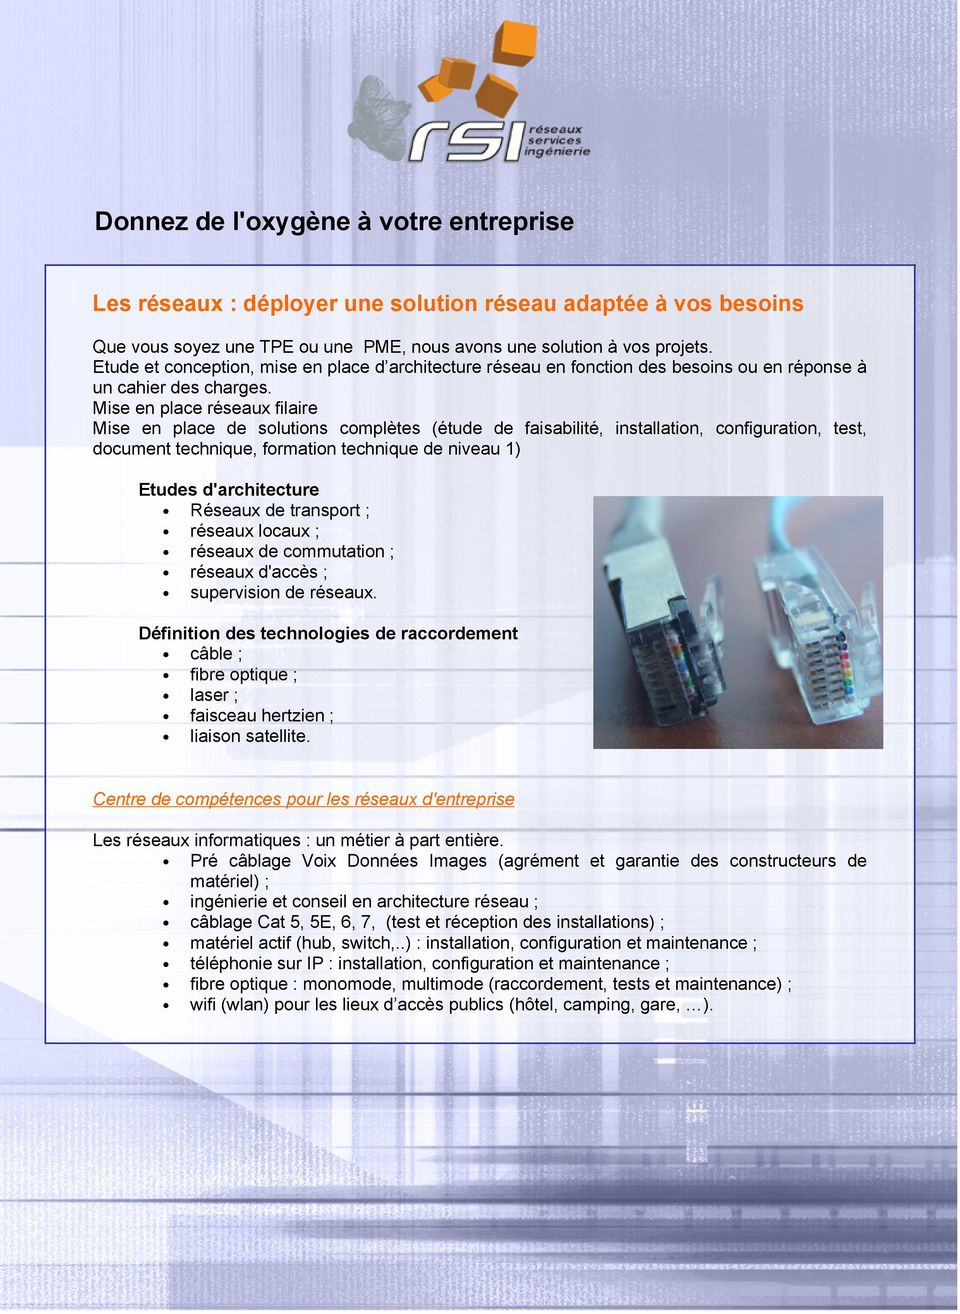 Mise en place réseaux filaire Mise en place de solutions complètes (étude de faisabilité, installation, configuration, test, document technique, formation technique de niveau 1) Etudes d'architecture